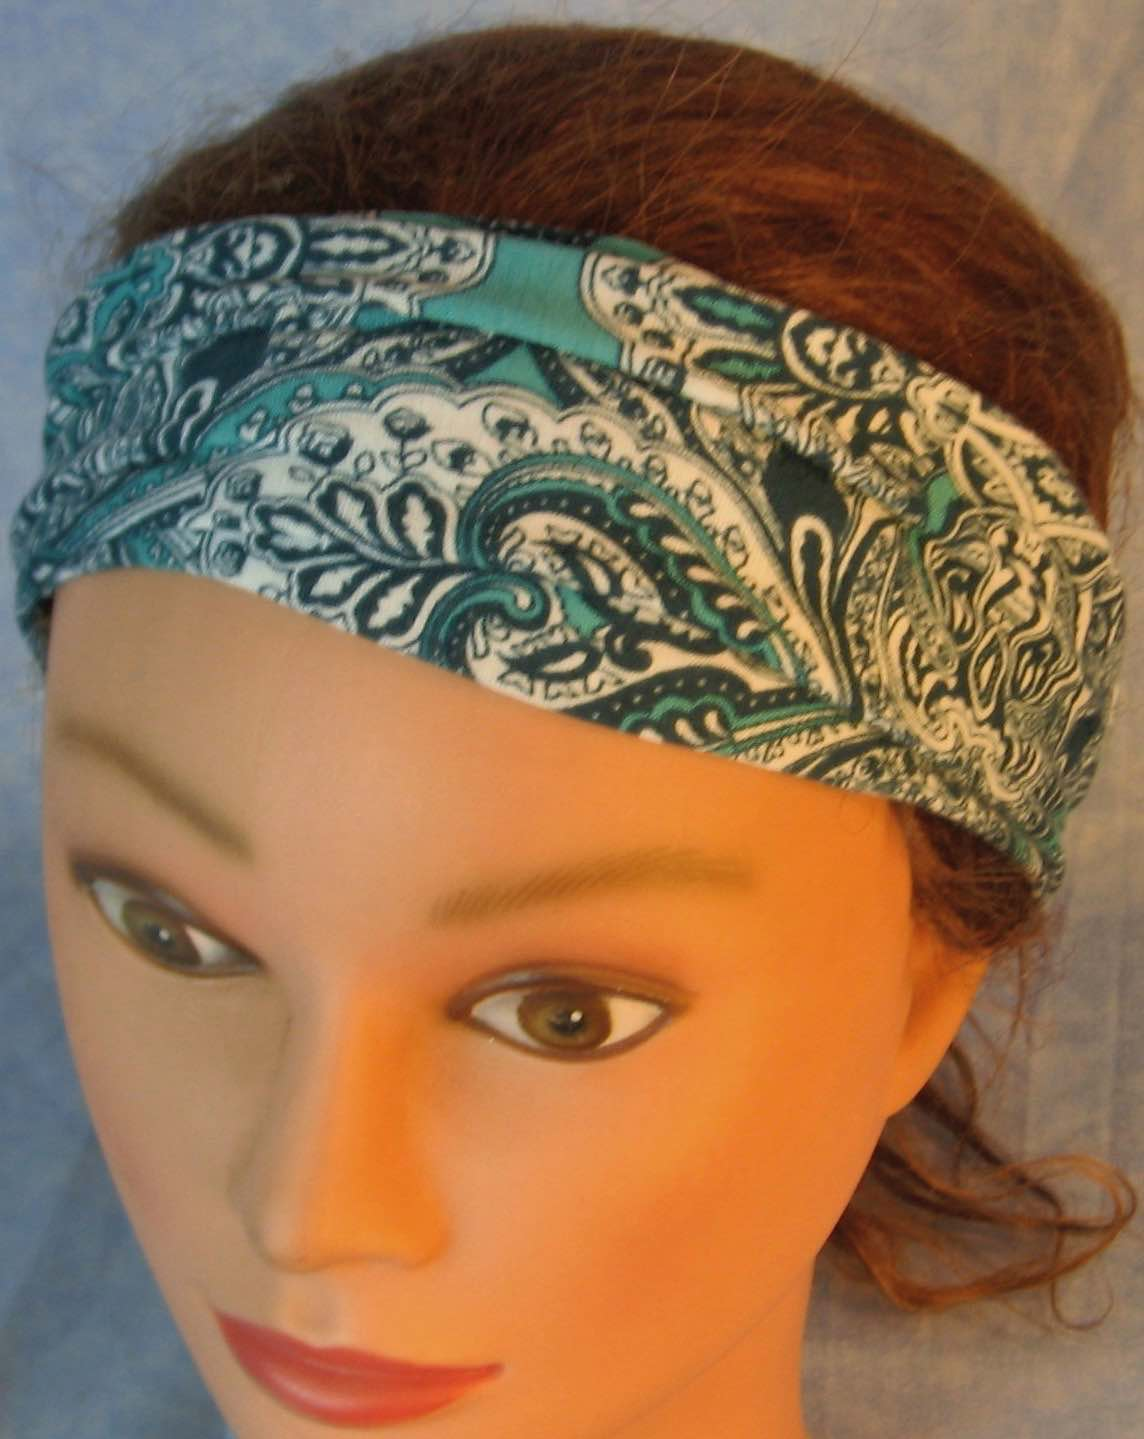 Headband-Green White Paisley Doily Performance Knit-Adult S